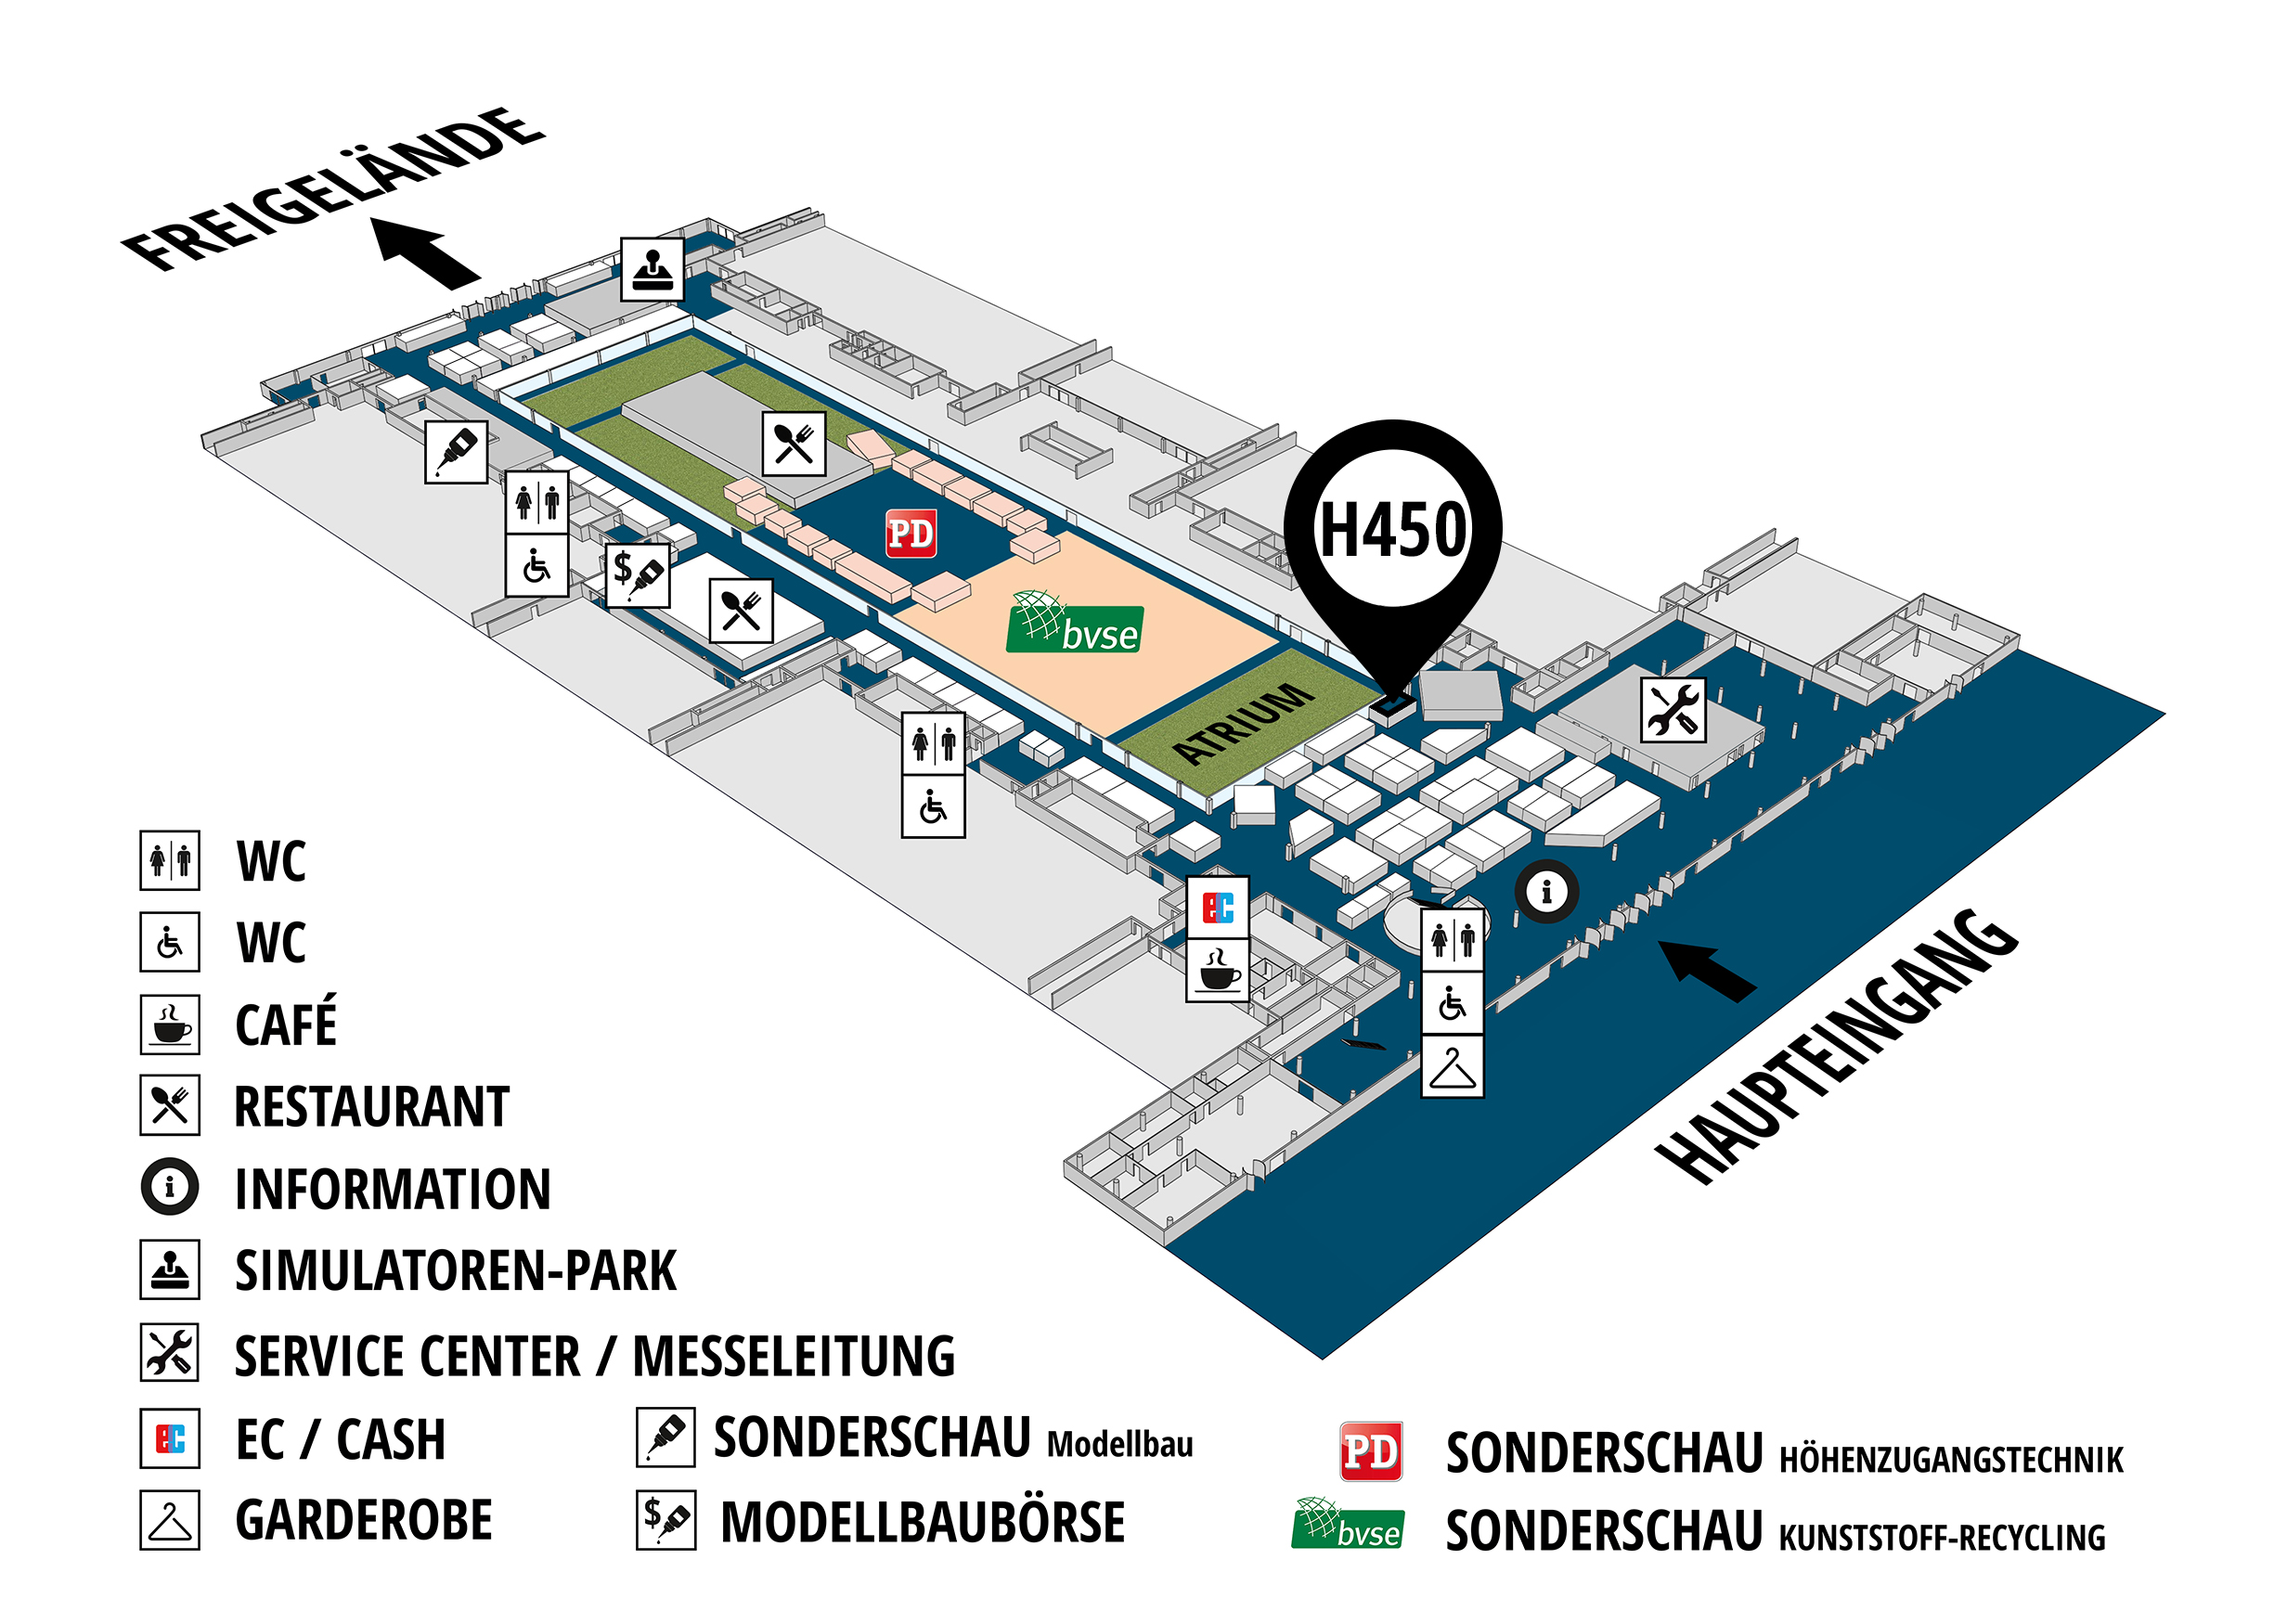 RecyclingAKTIV & TiefbauLIVE 2019. The Demonstration Trade Fairs ||Demonstration trade fair for waste removal and recycling. Demonstration trade fair for road construction and civil engineering. hall map (Visitors circuit): stand H450